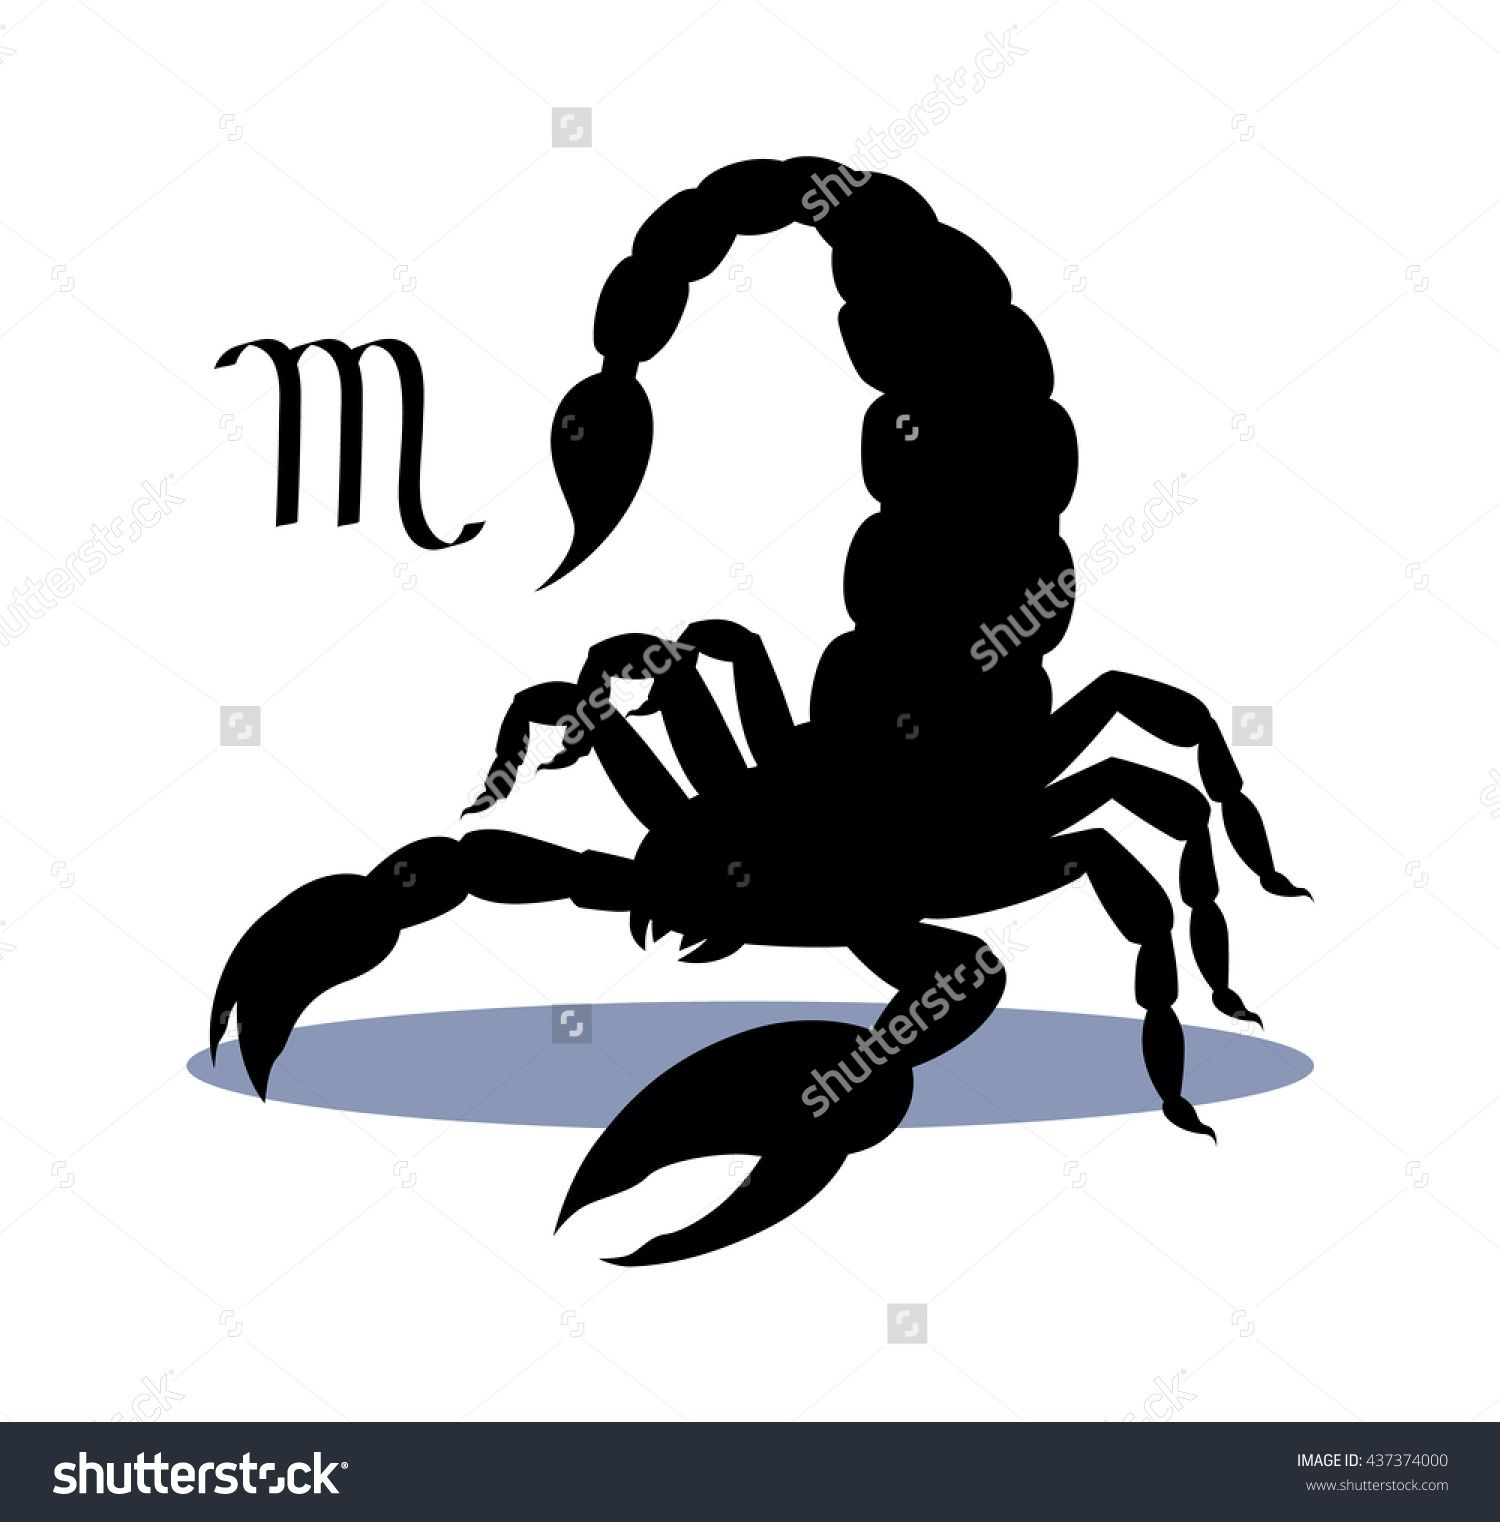 5015b524cf504 Silhouette of dangerous insect scorpion isolated on white background,  detailed spider, astrological icon Scorpio. The symbol of the month of  November on the ...